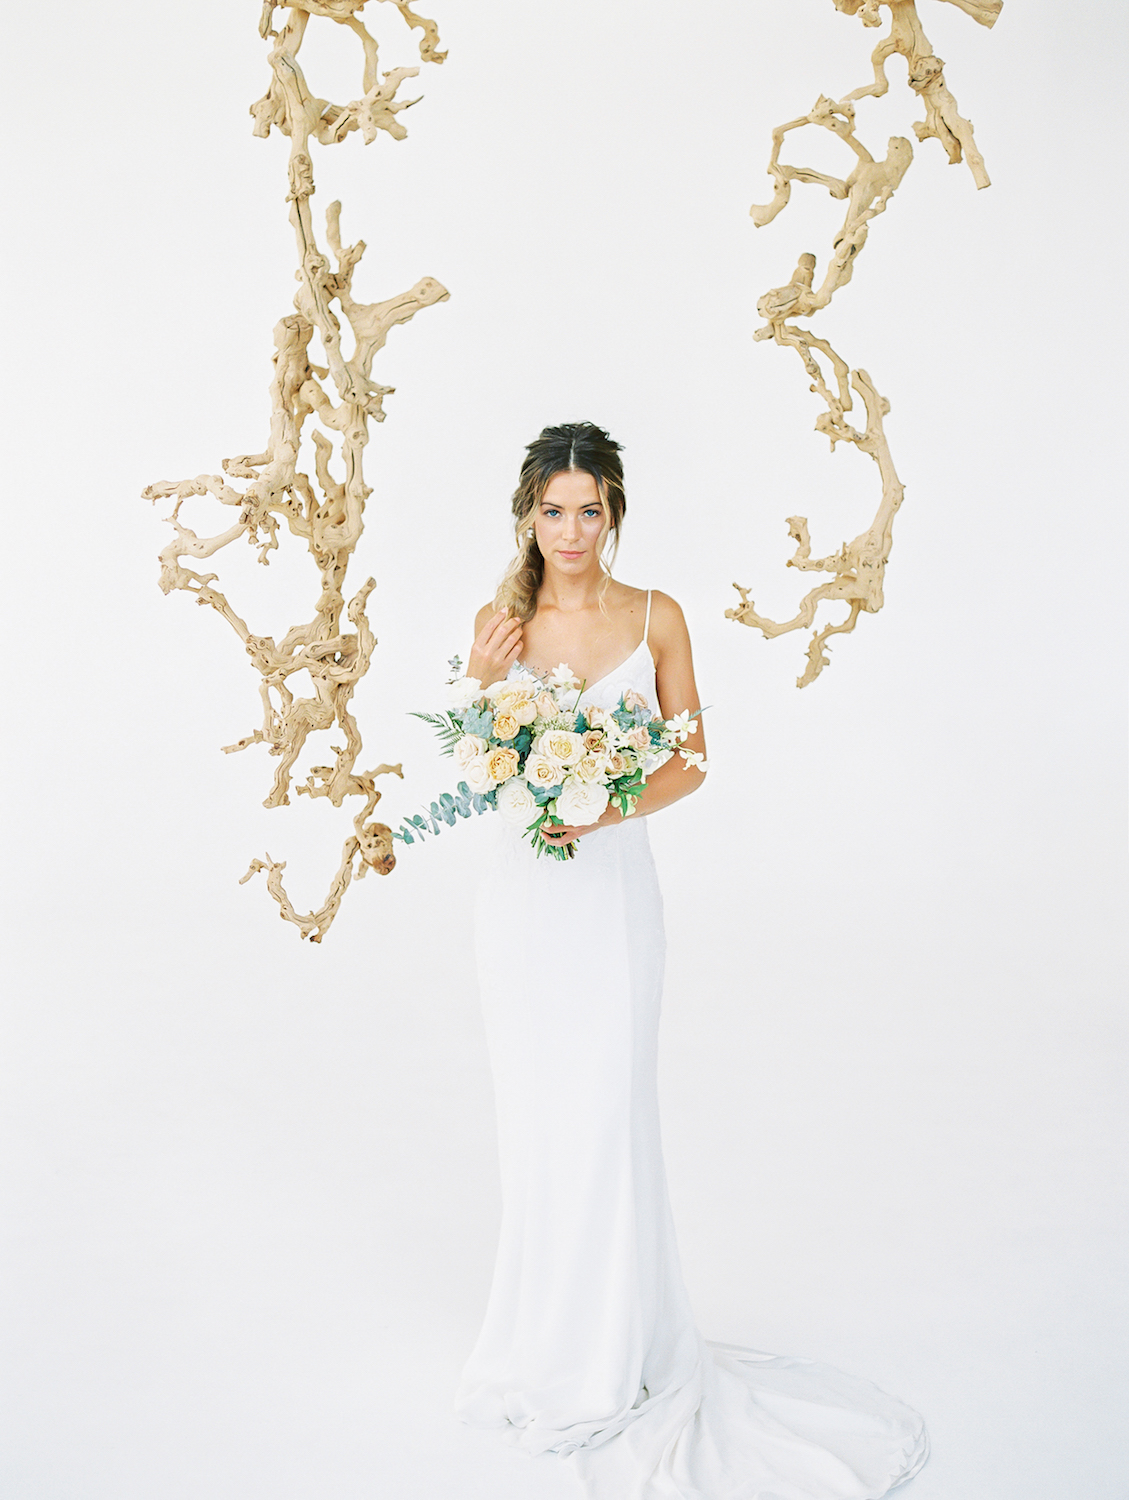 Hanging grapewood installation | Studio 710 | Compass Floral | Wedding Florist in San Diego and Southern California | Dear Lovers Photography